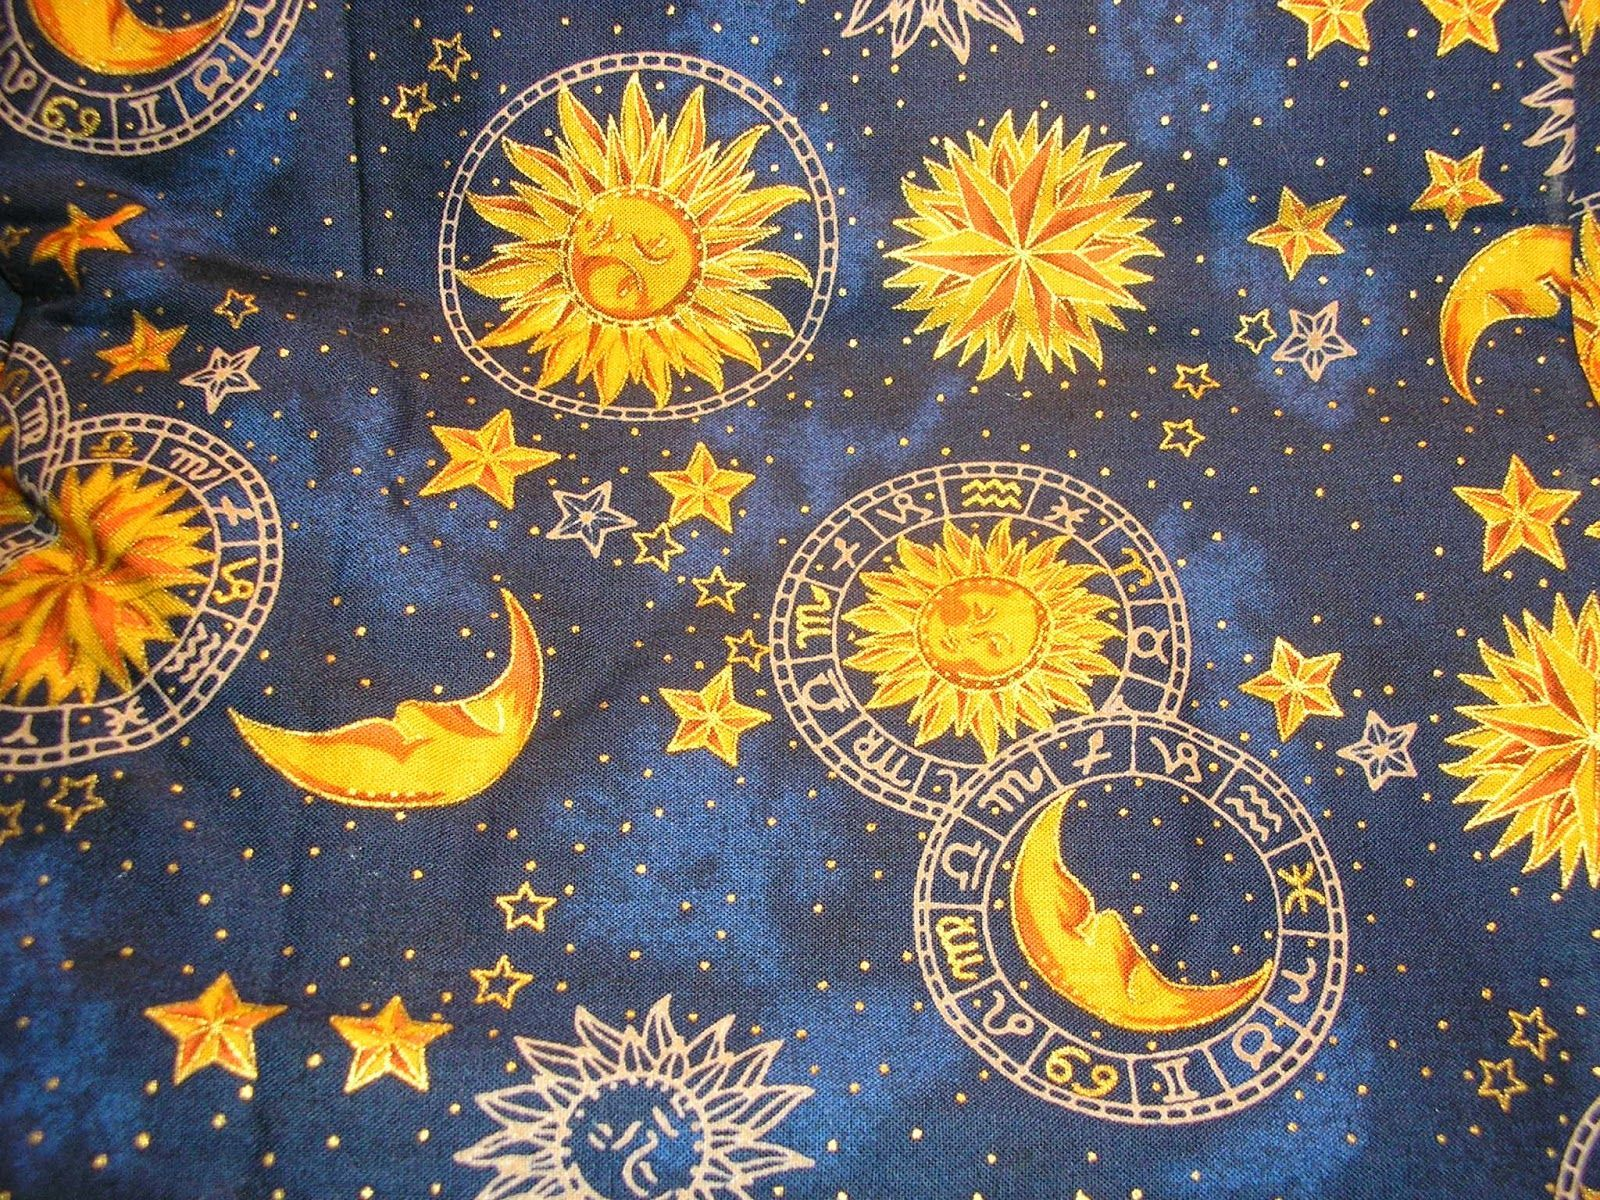 Celestial Moon Wallpapers   Top Free Celestial Moon Backgrounds ...